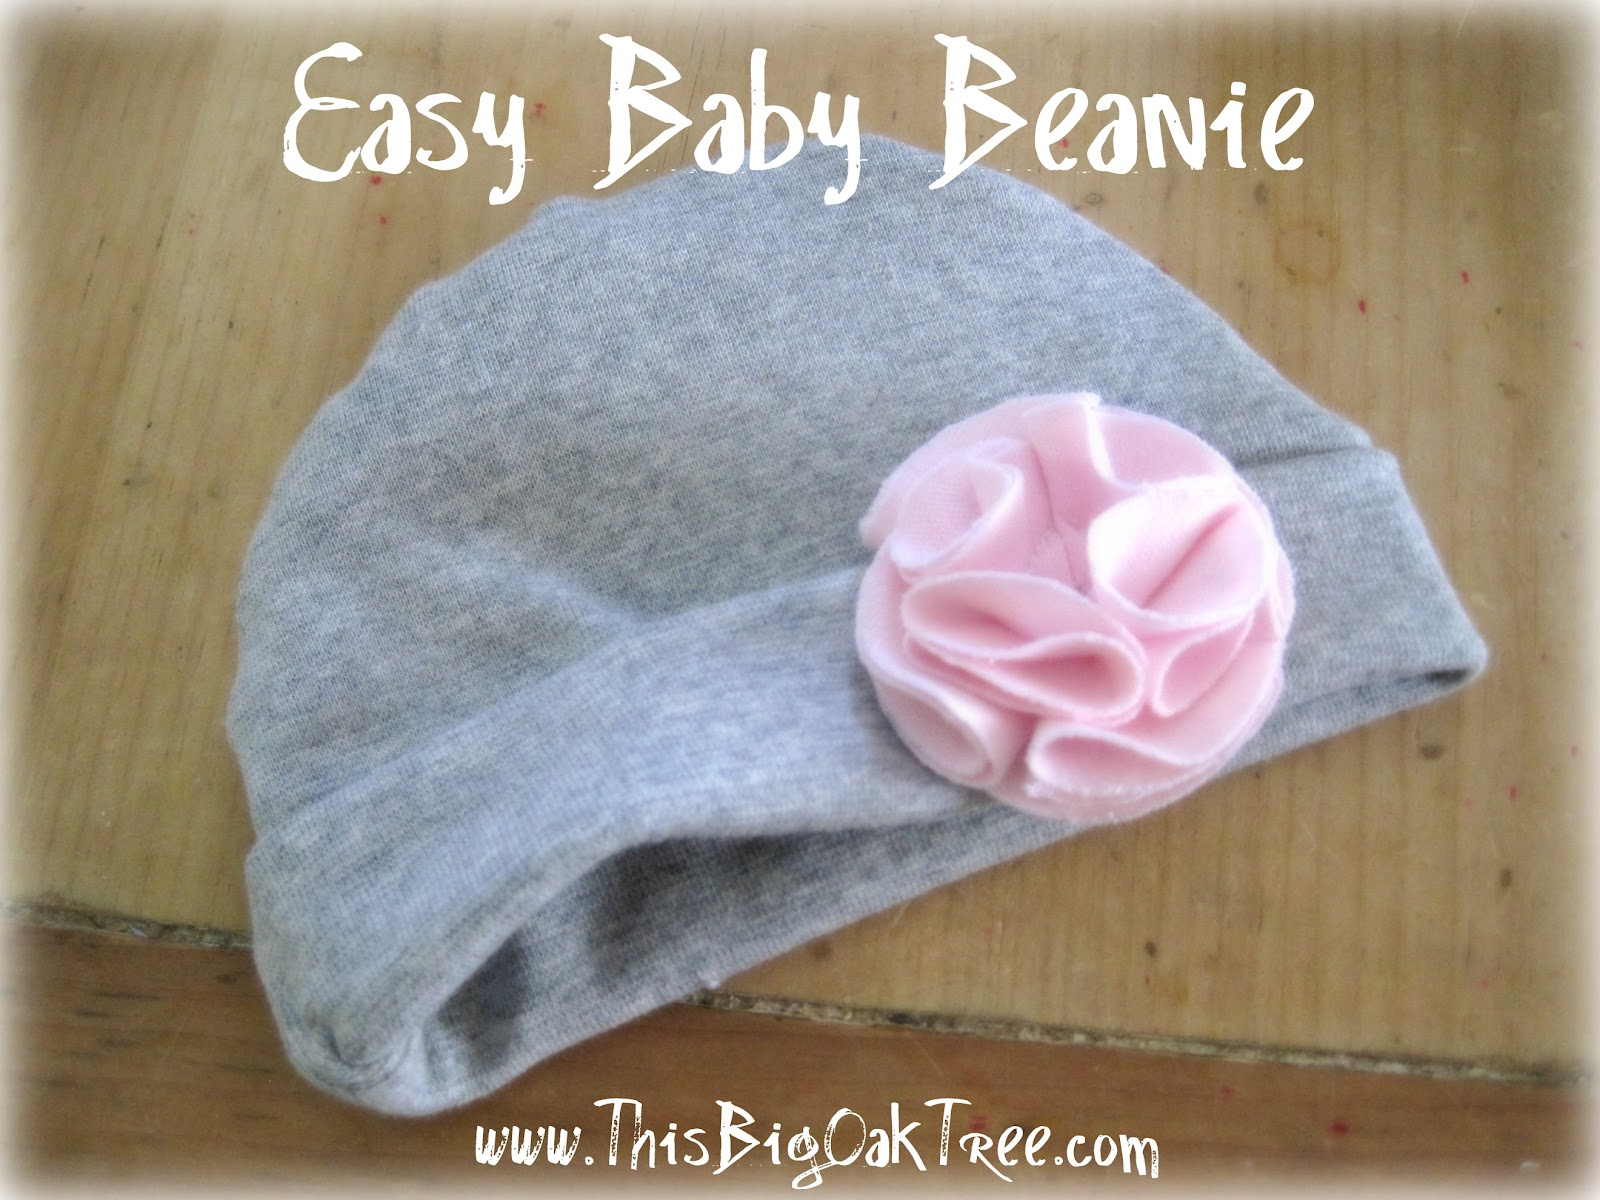 Beanie Sewing Pattern Interesting Decorating Ideas